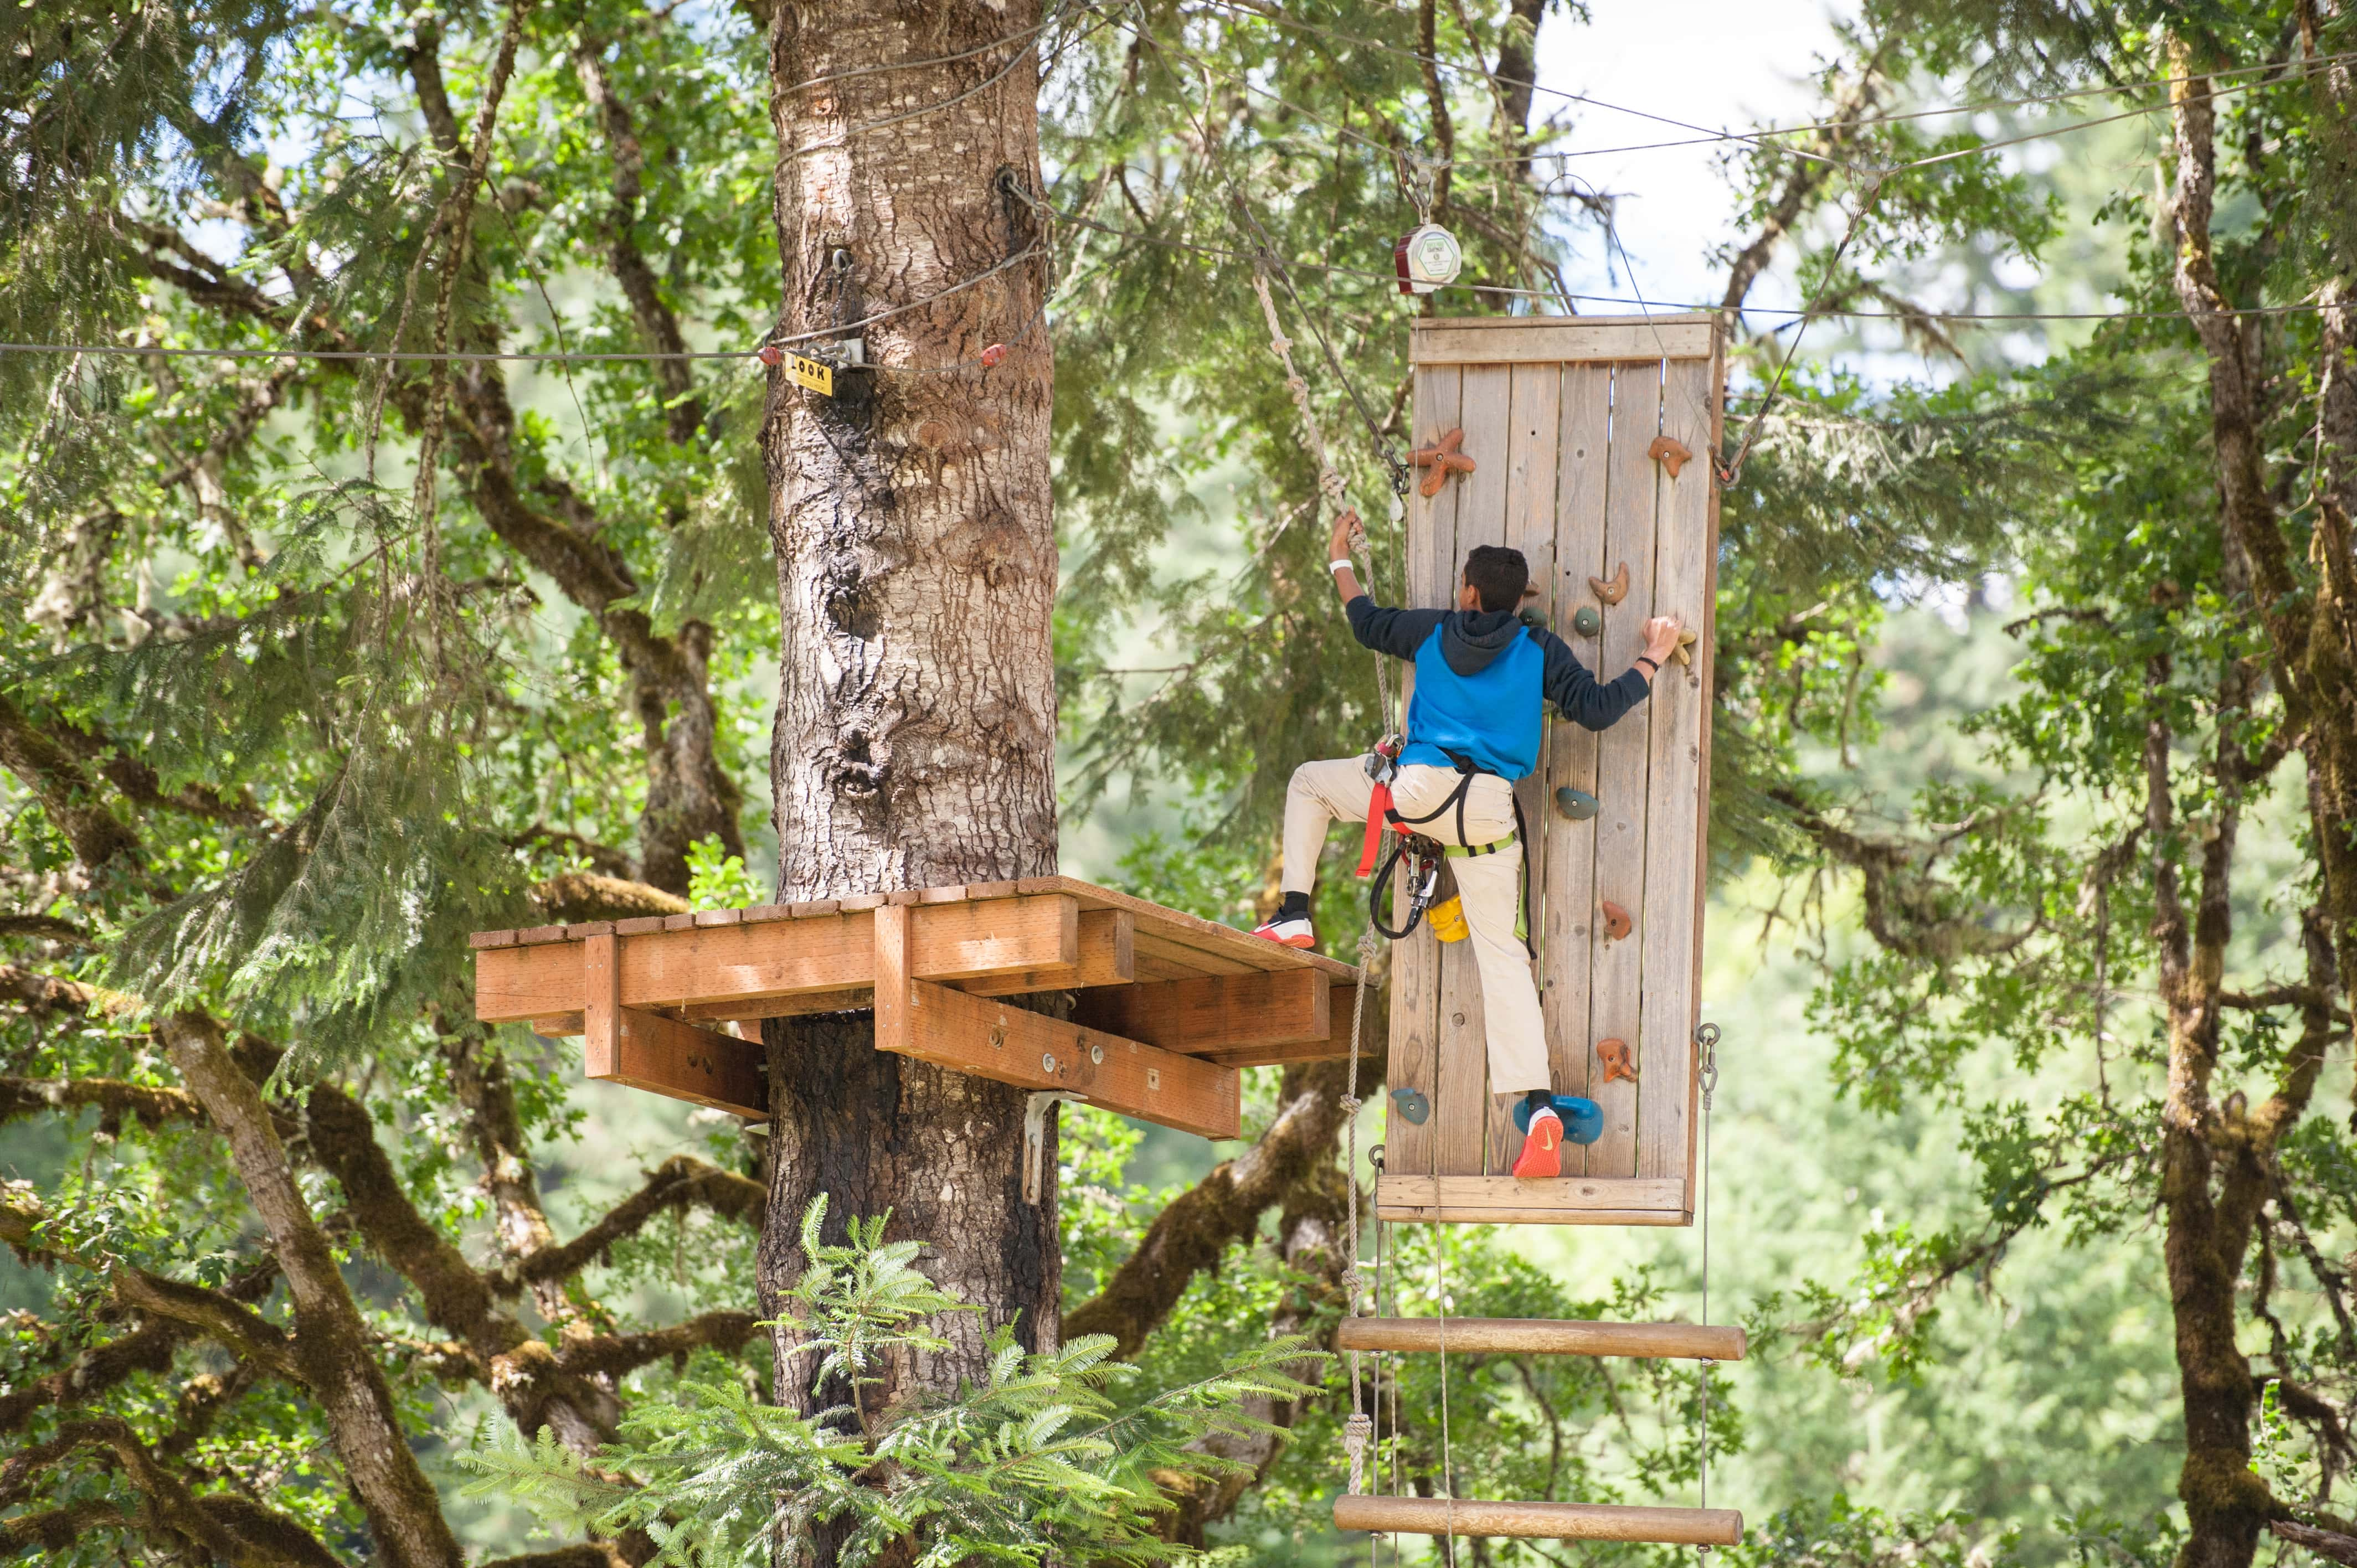 Tree Top Obstacle Course - Gaston OR - Tree to Tree Adventure Park